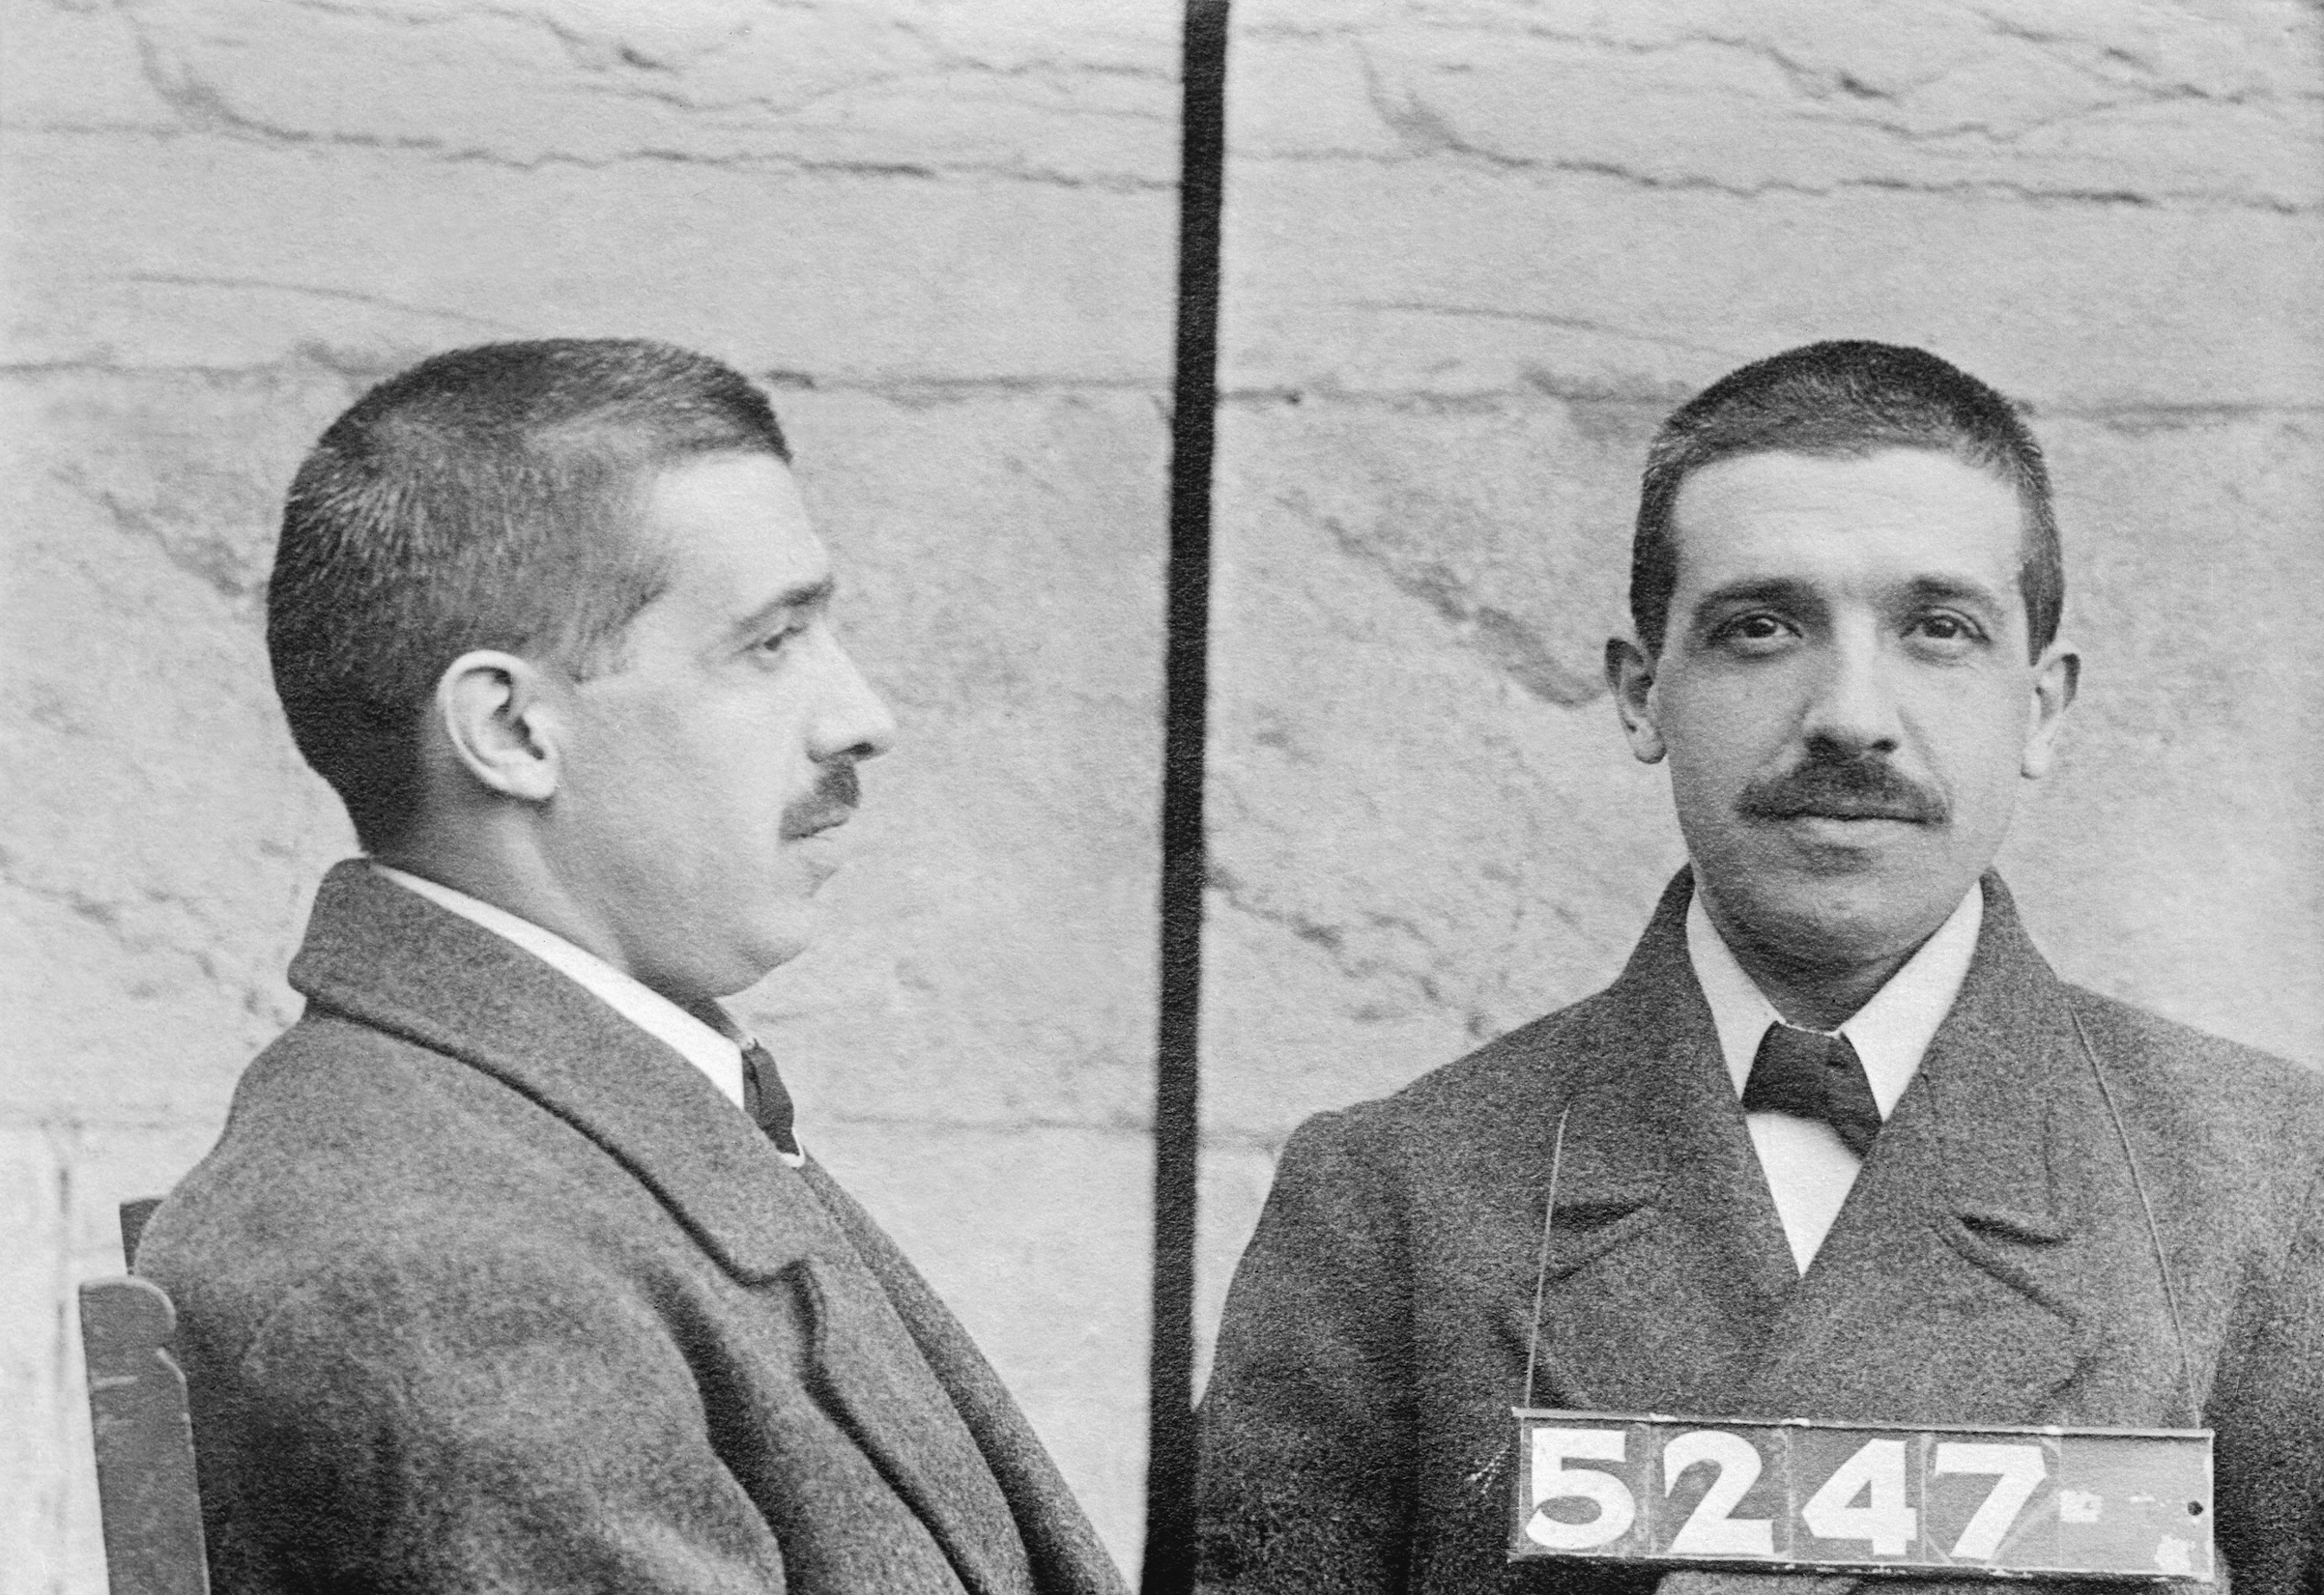 Mug shots of Charles Ponzi, Boston financial wizard.